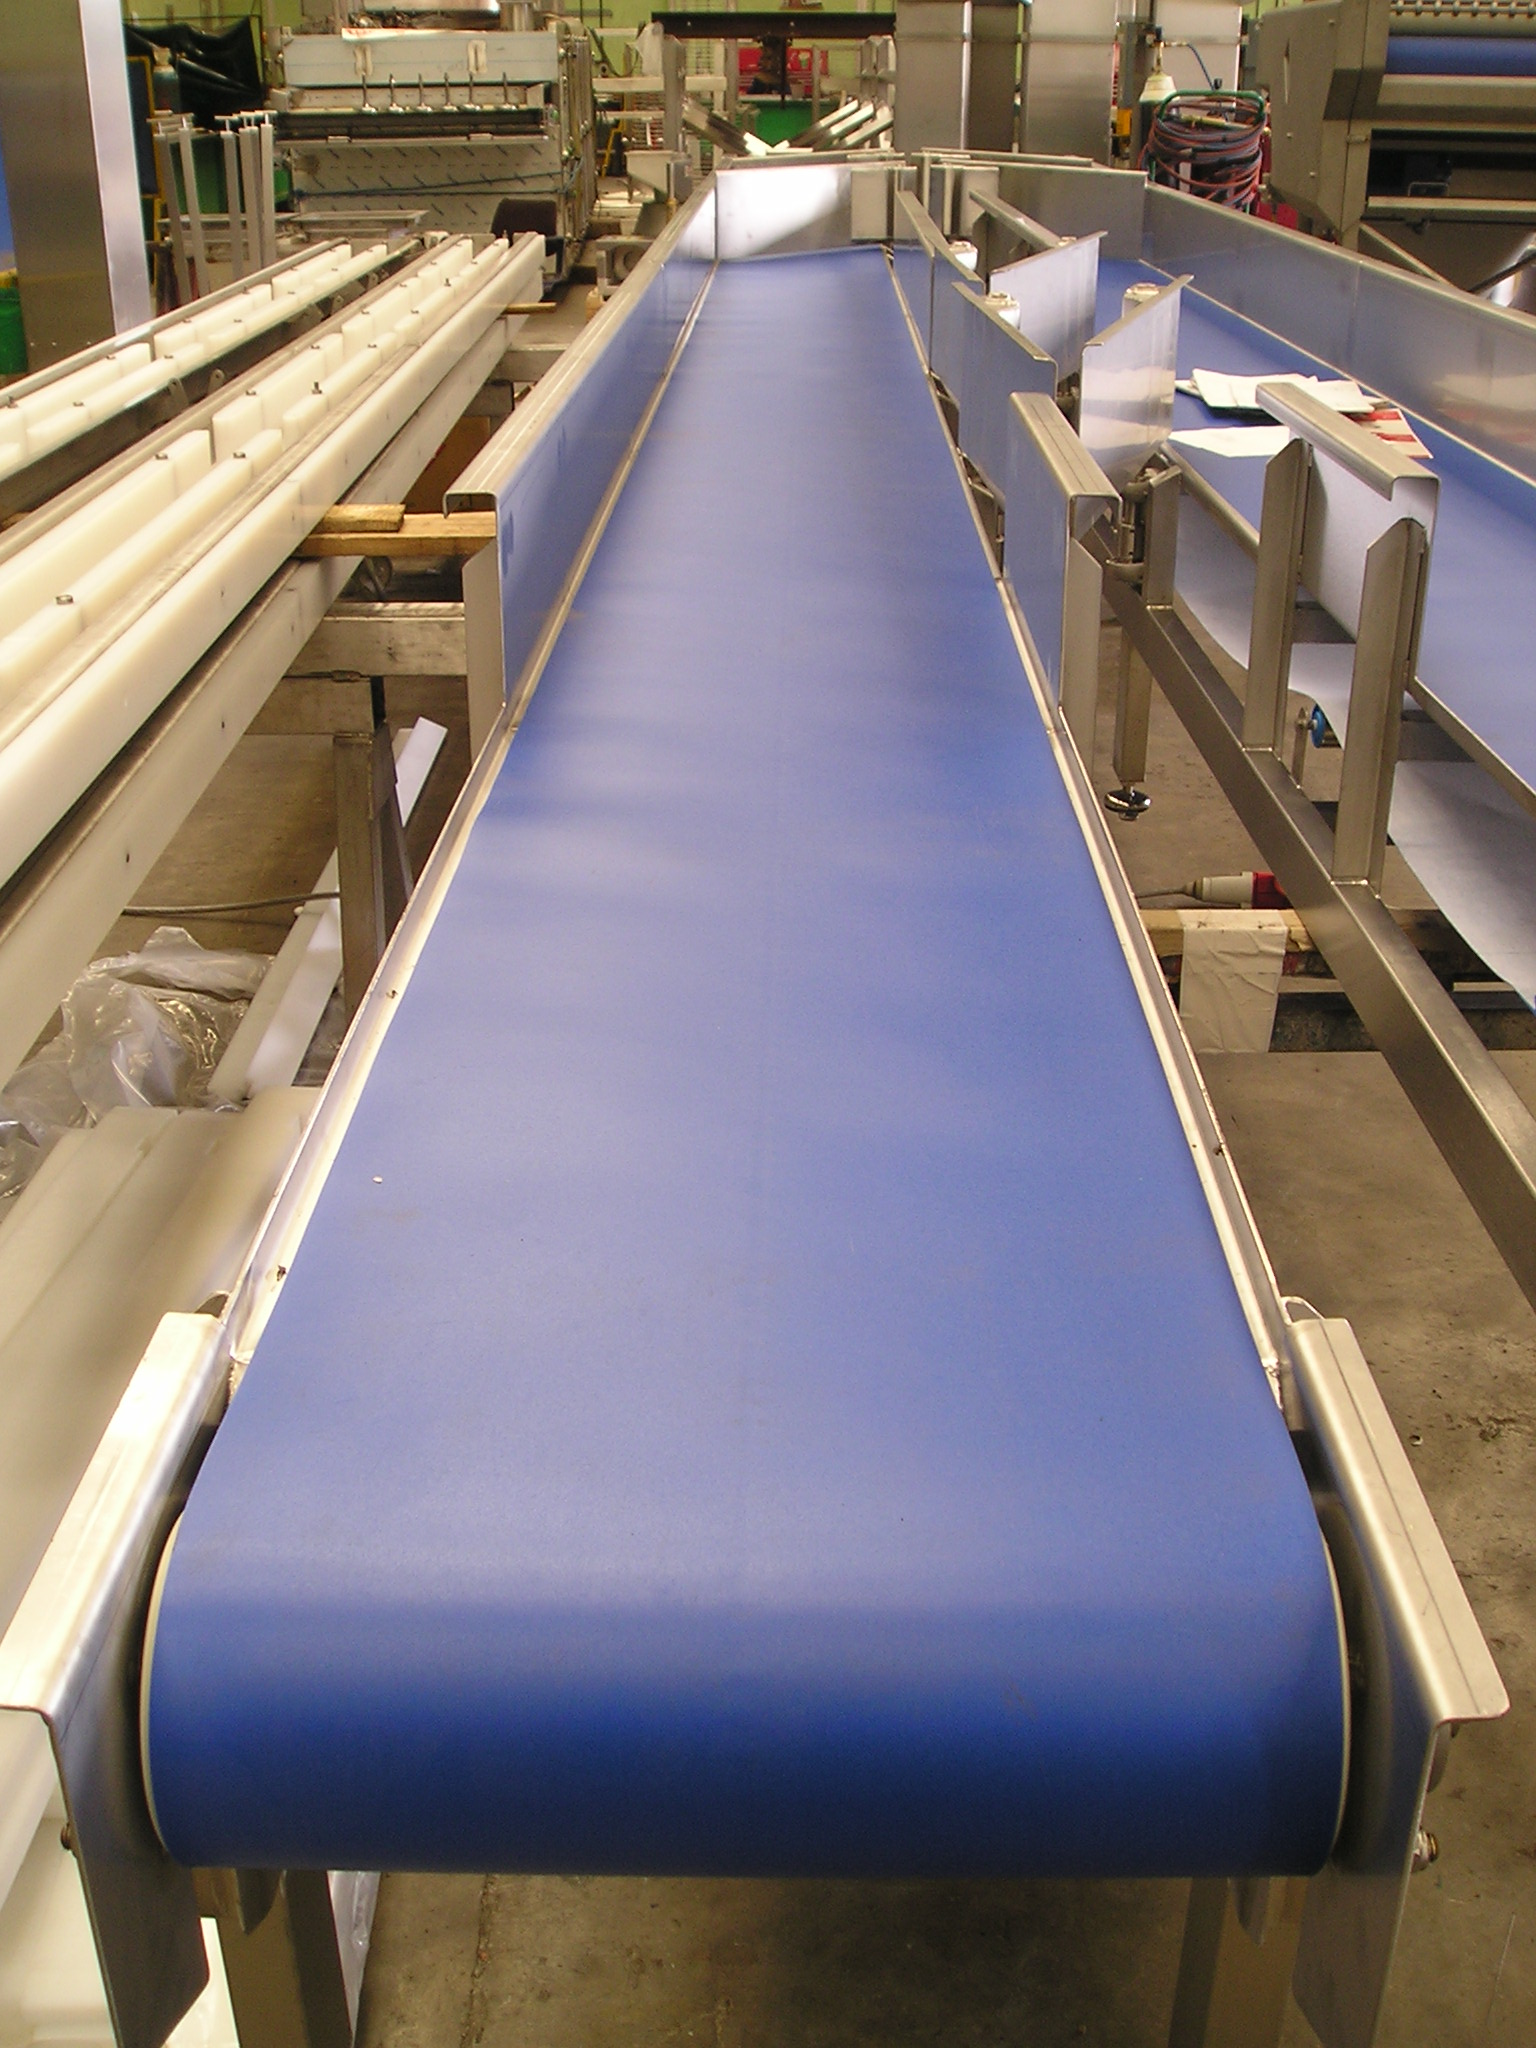 Flat Belt Conveyors Manufacturers and Suppliers in Delhi Noida Gurugram